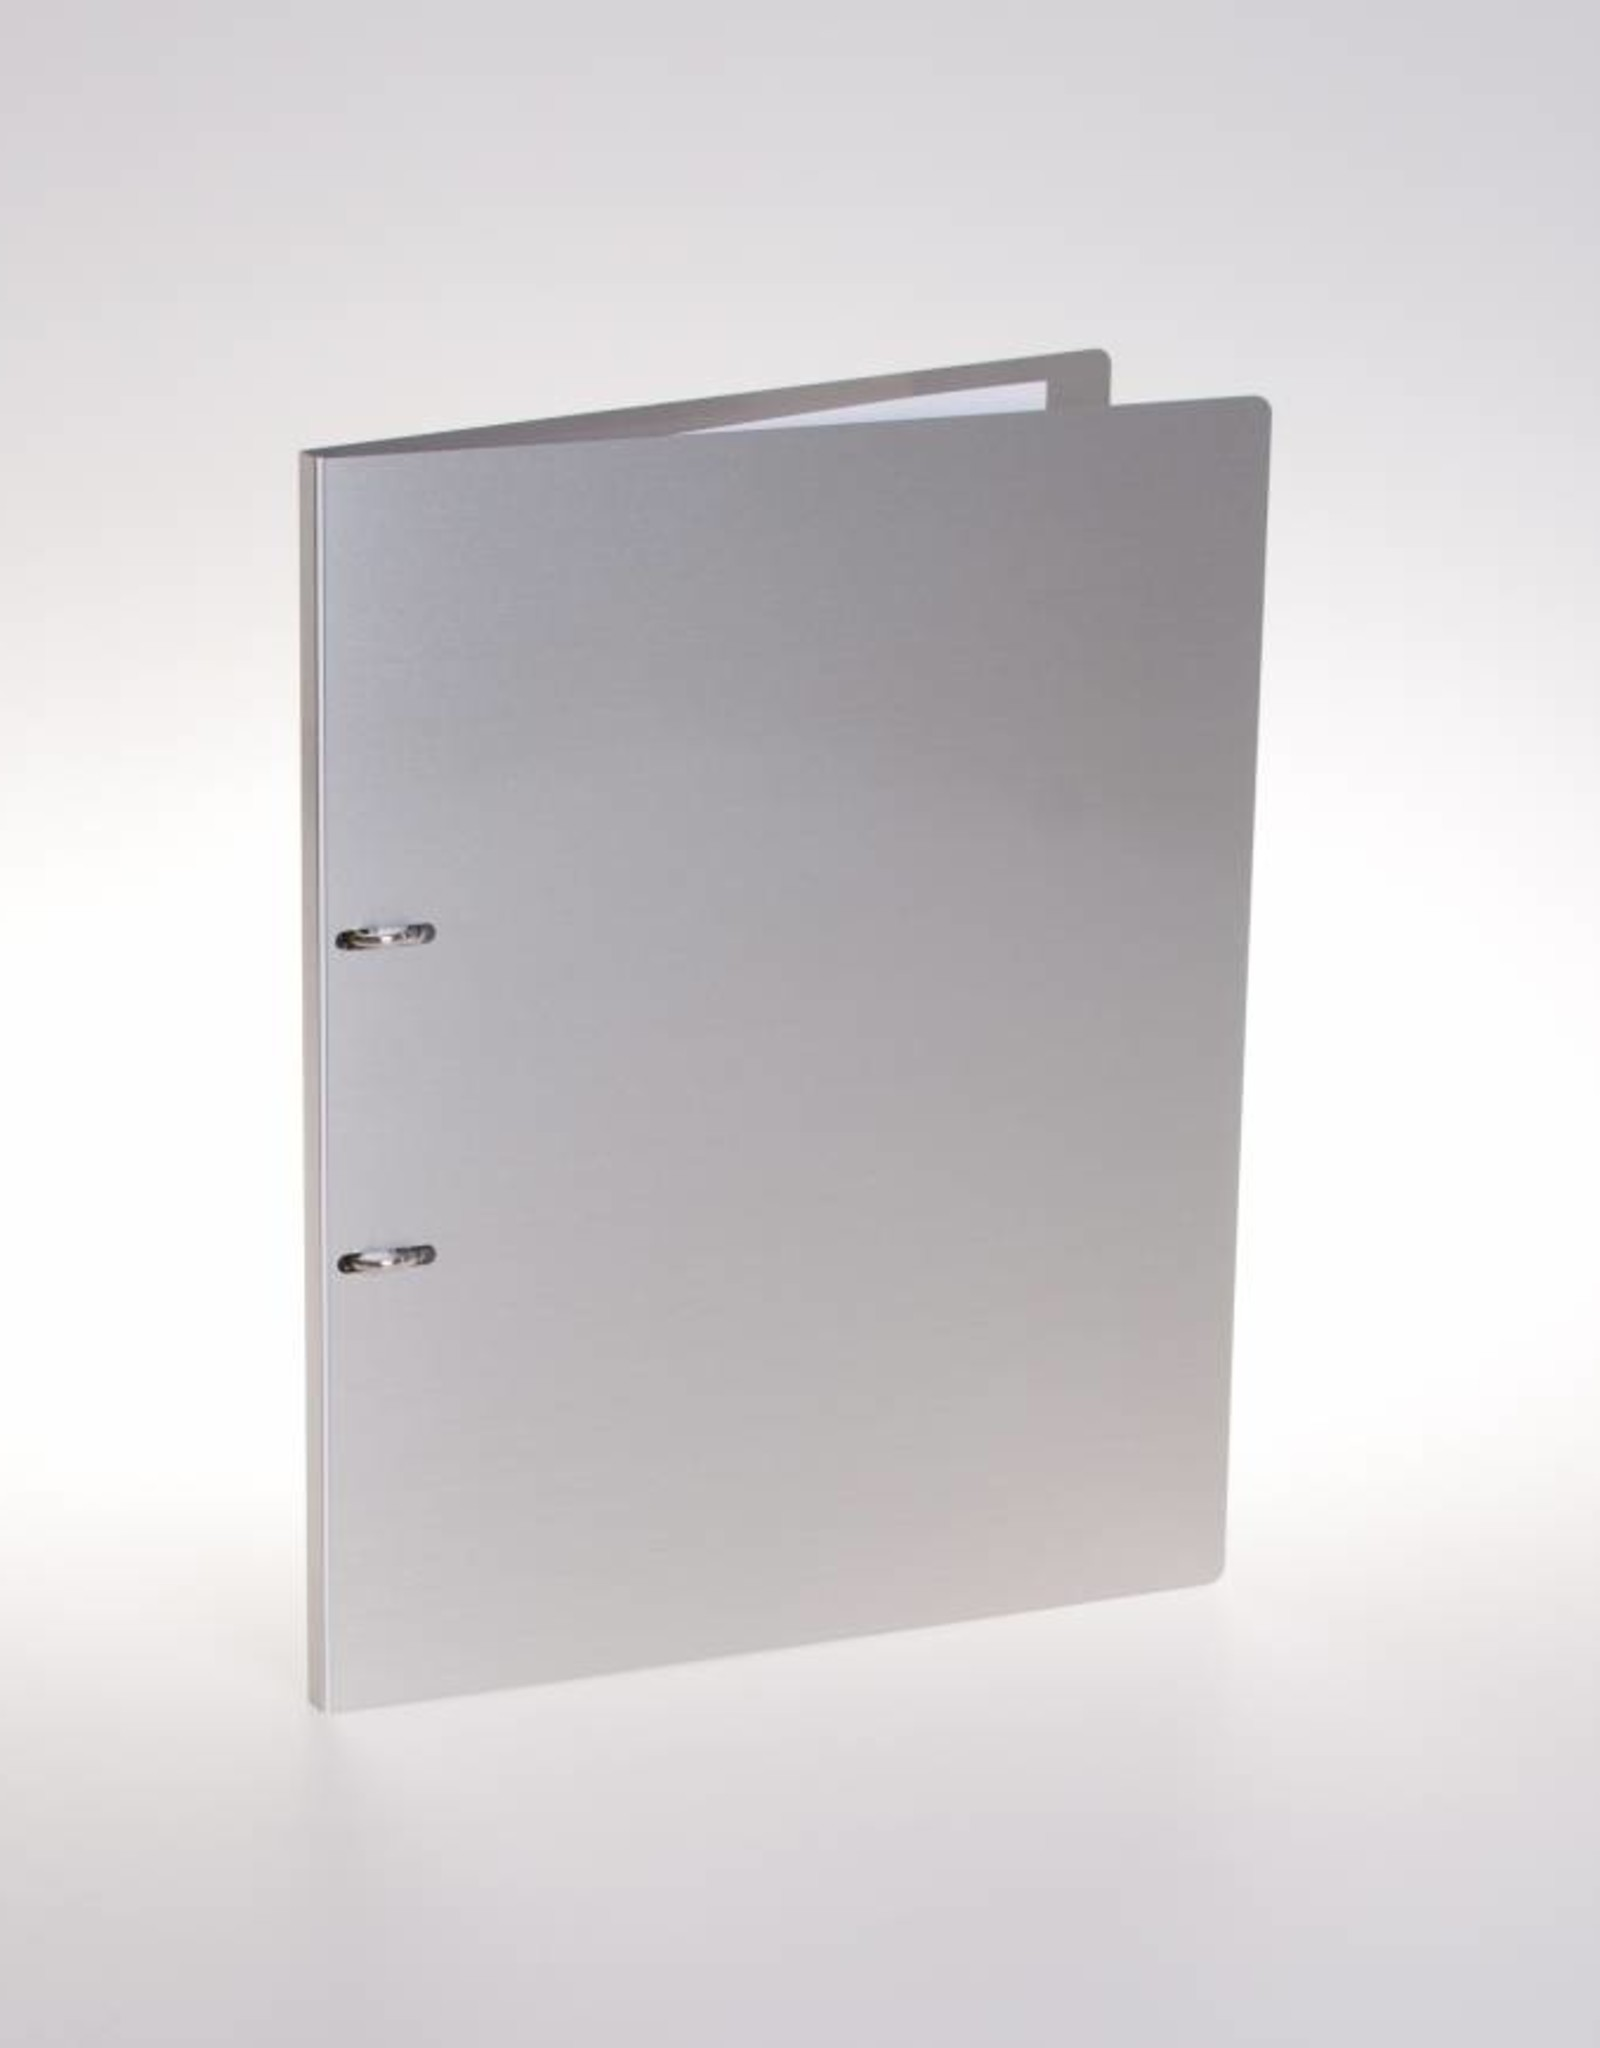 Ringbinder with 2 visible rings suitable for A4.